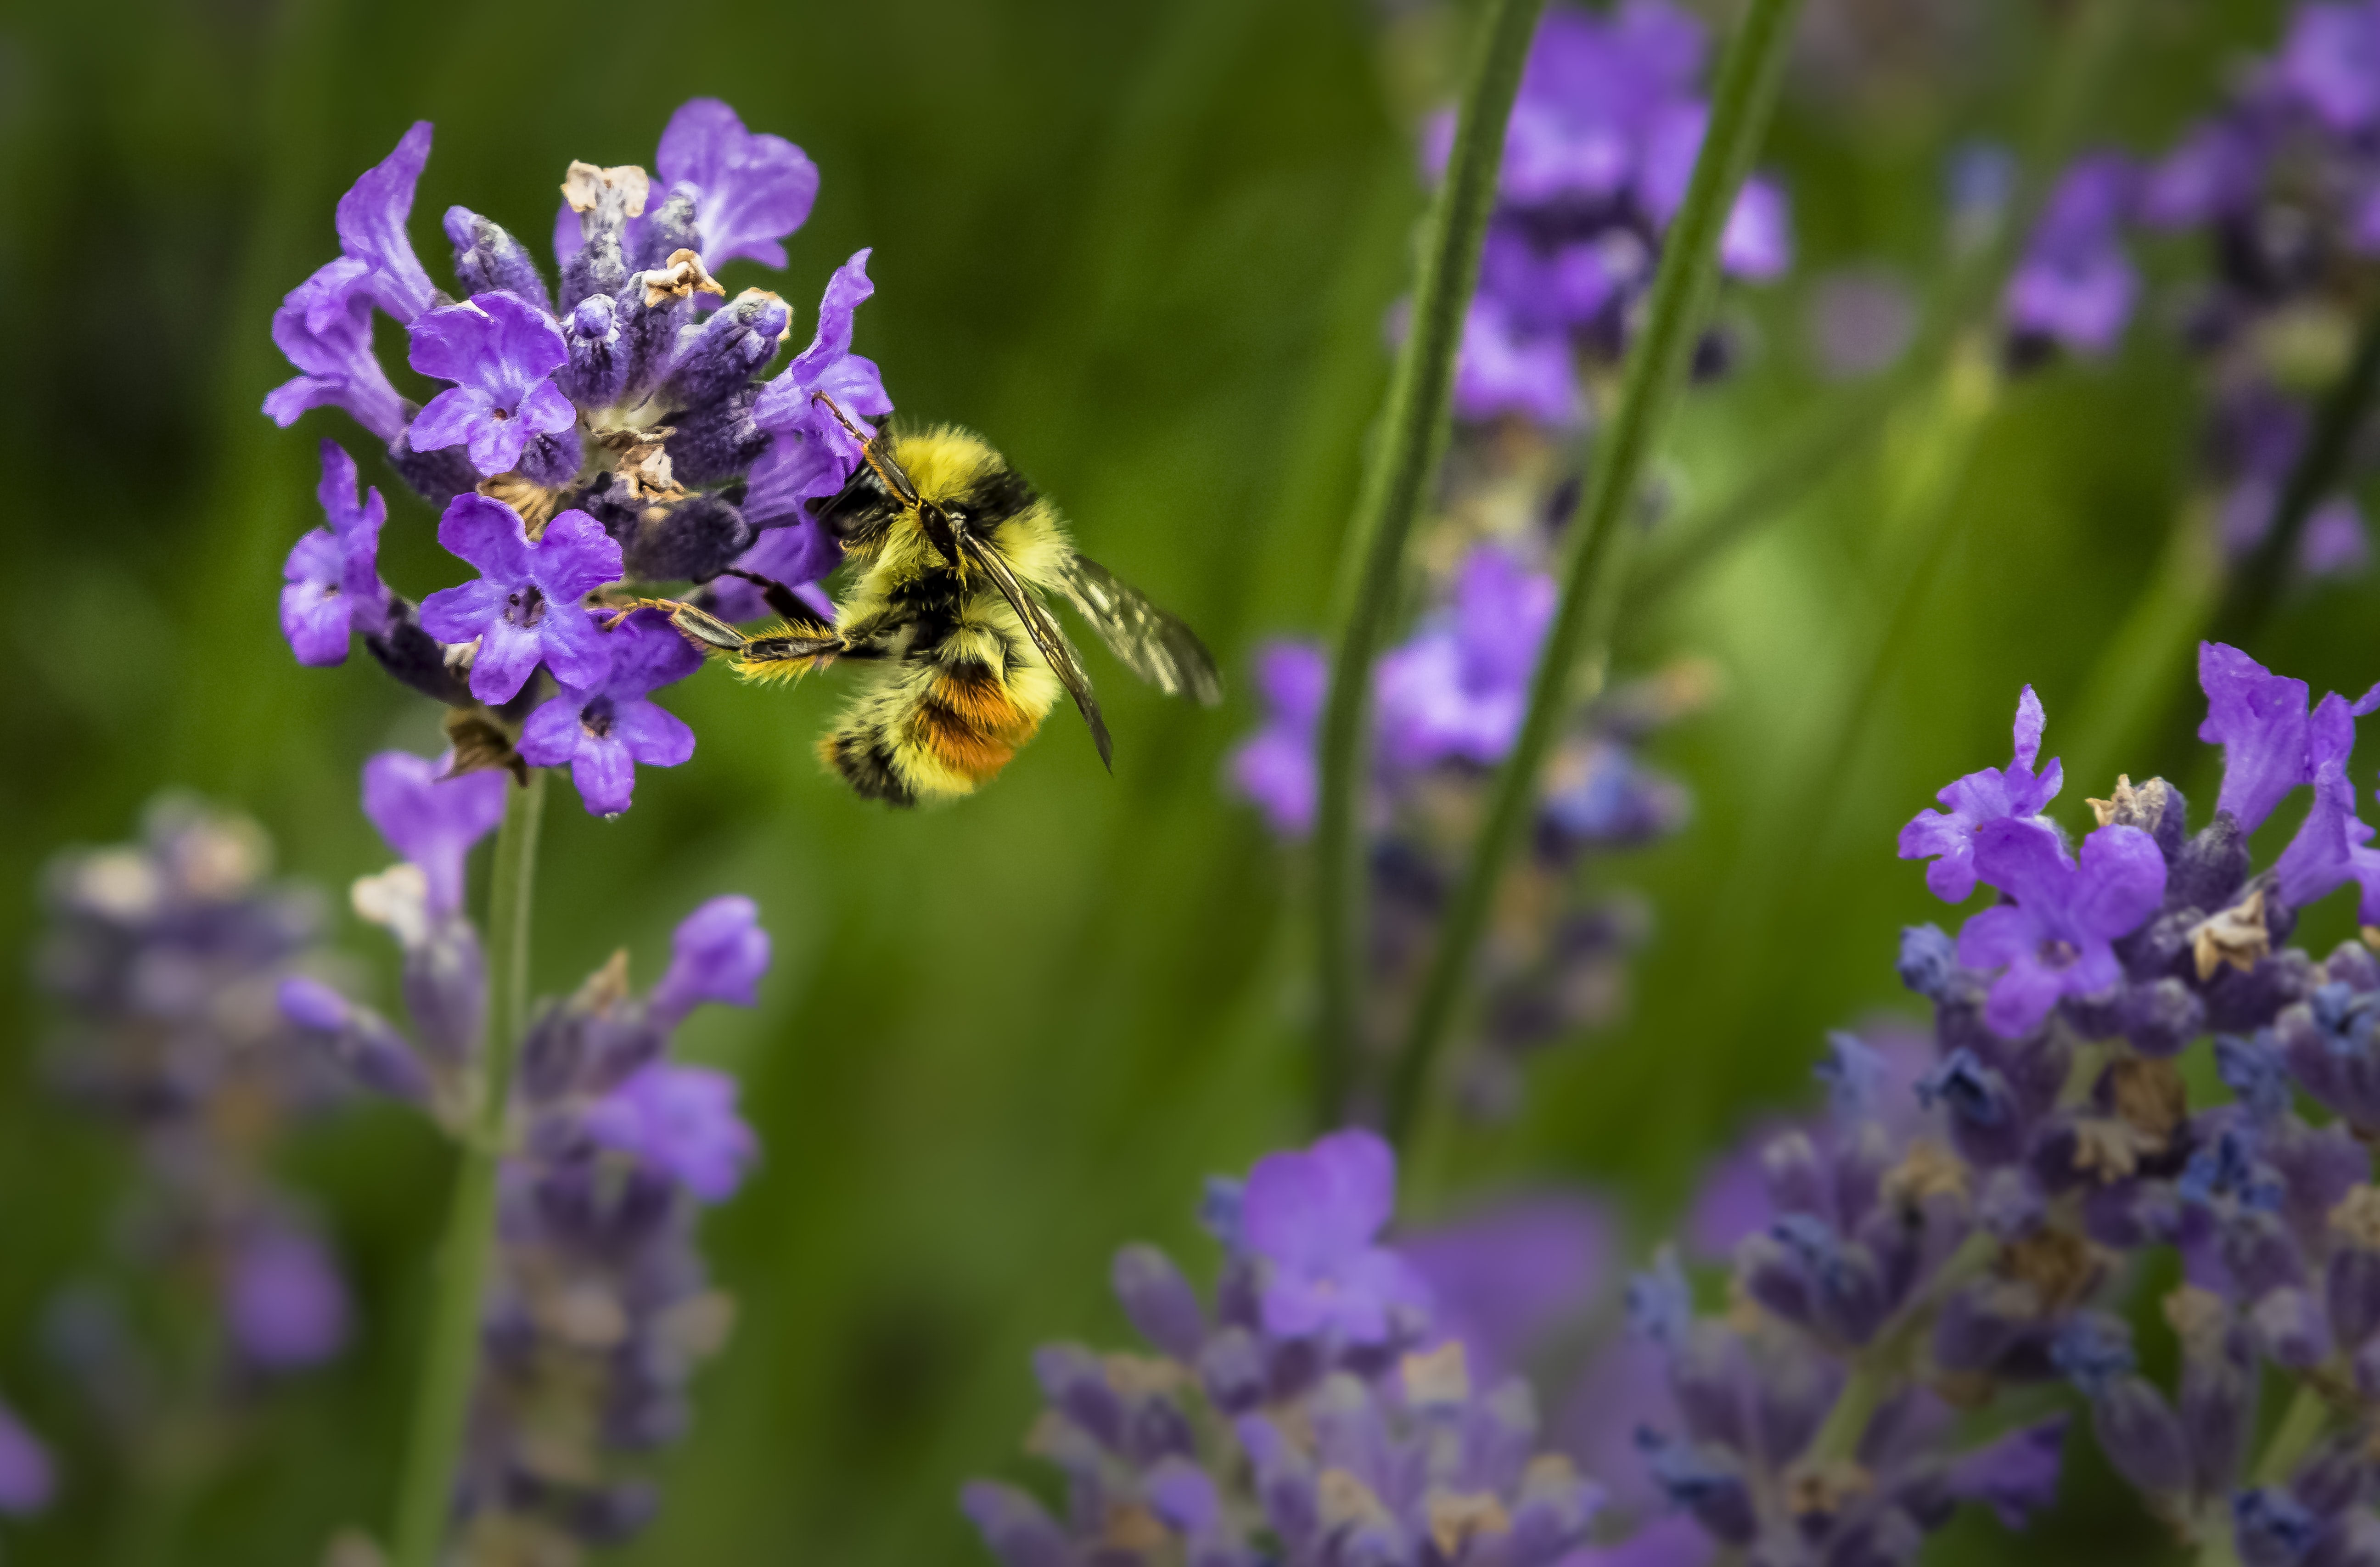 A bee collecting pollen in a cluster of lavender